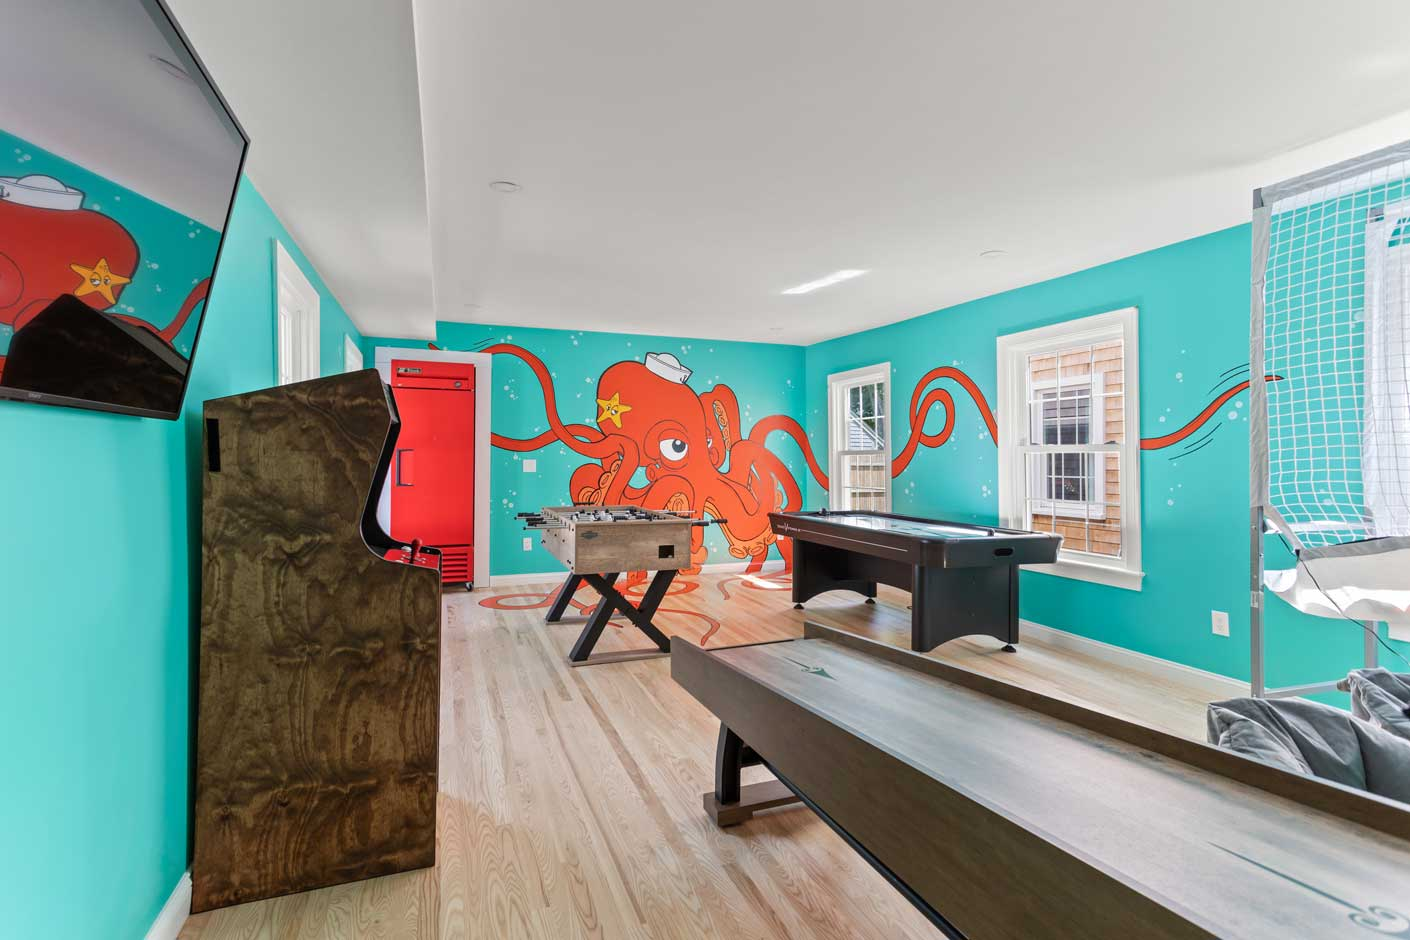 game room with octopus painted on the wall